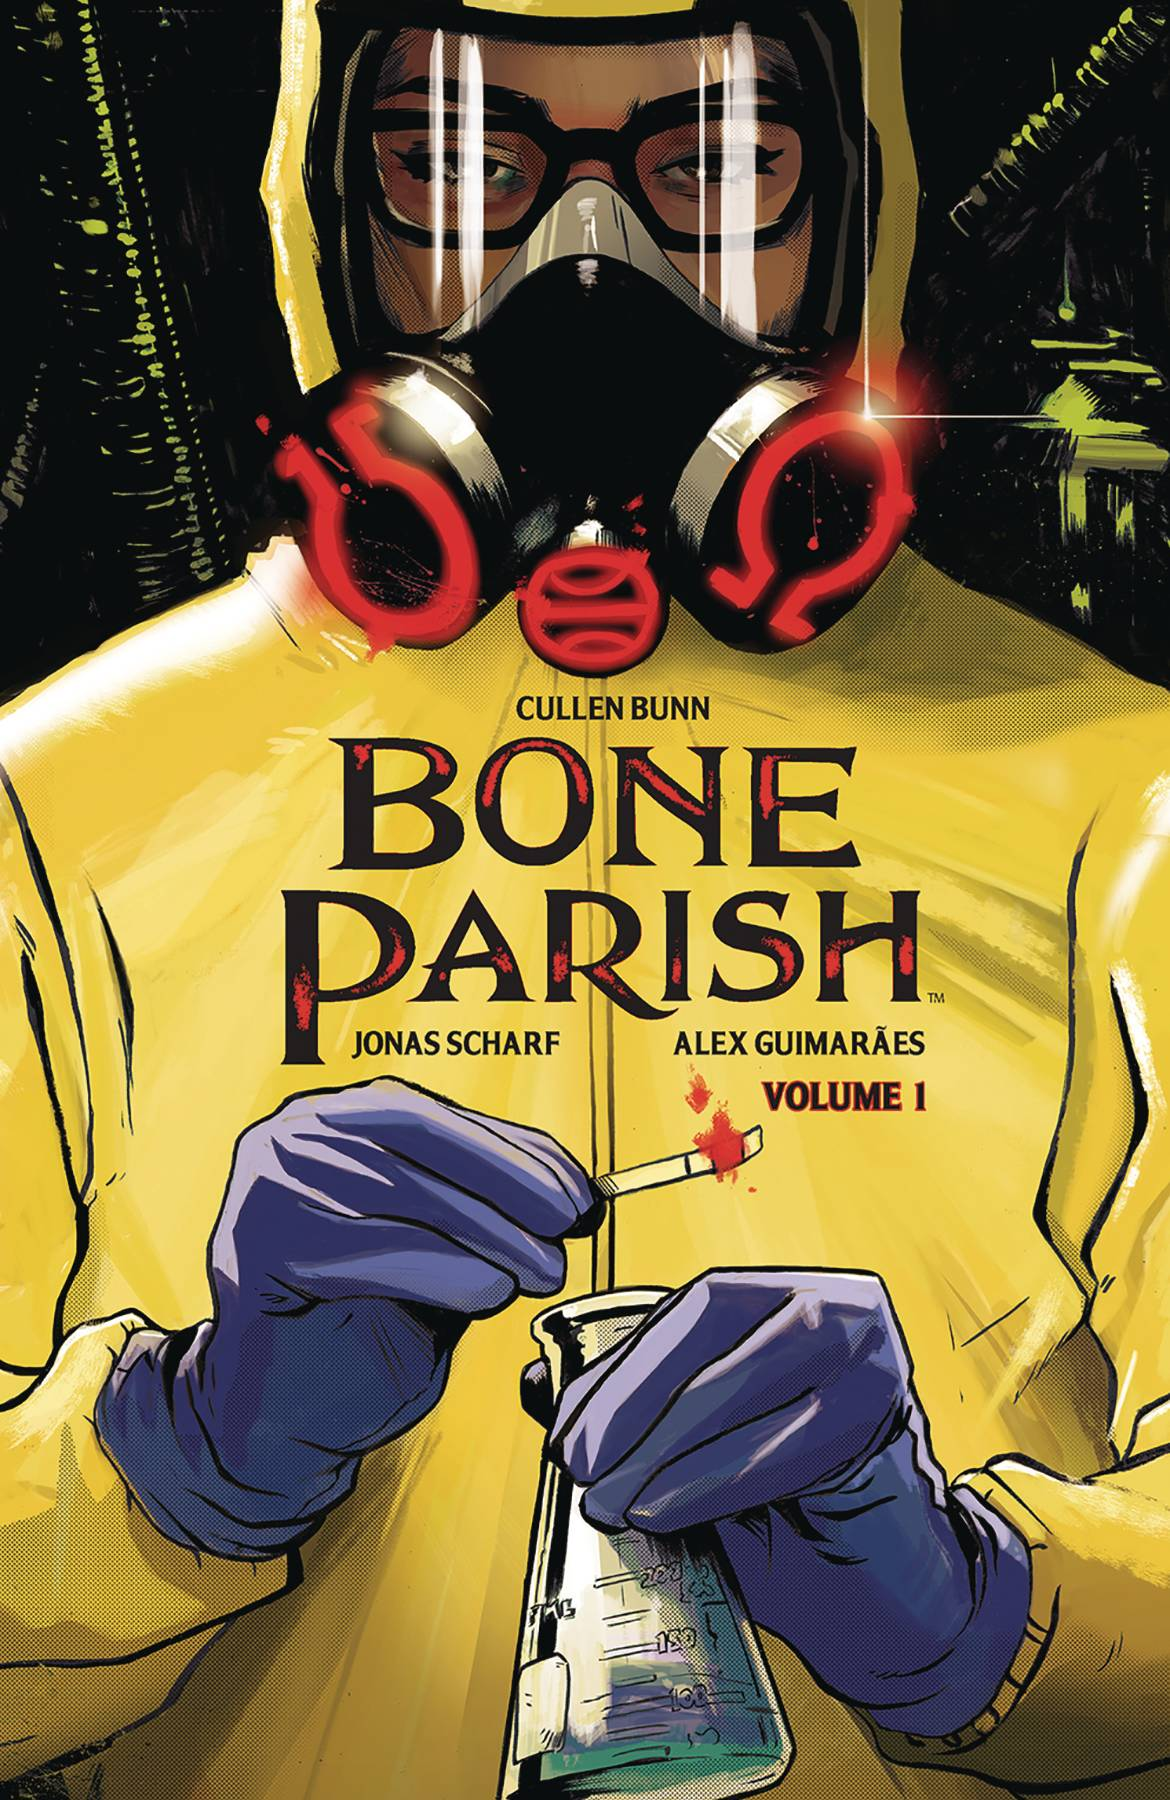 Bone Parish Vol 1 TP